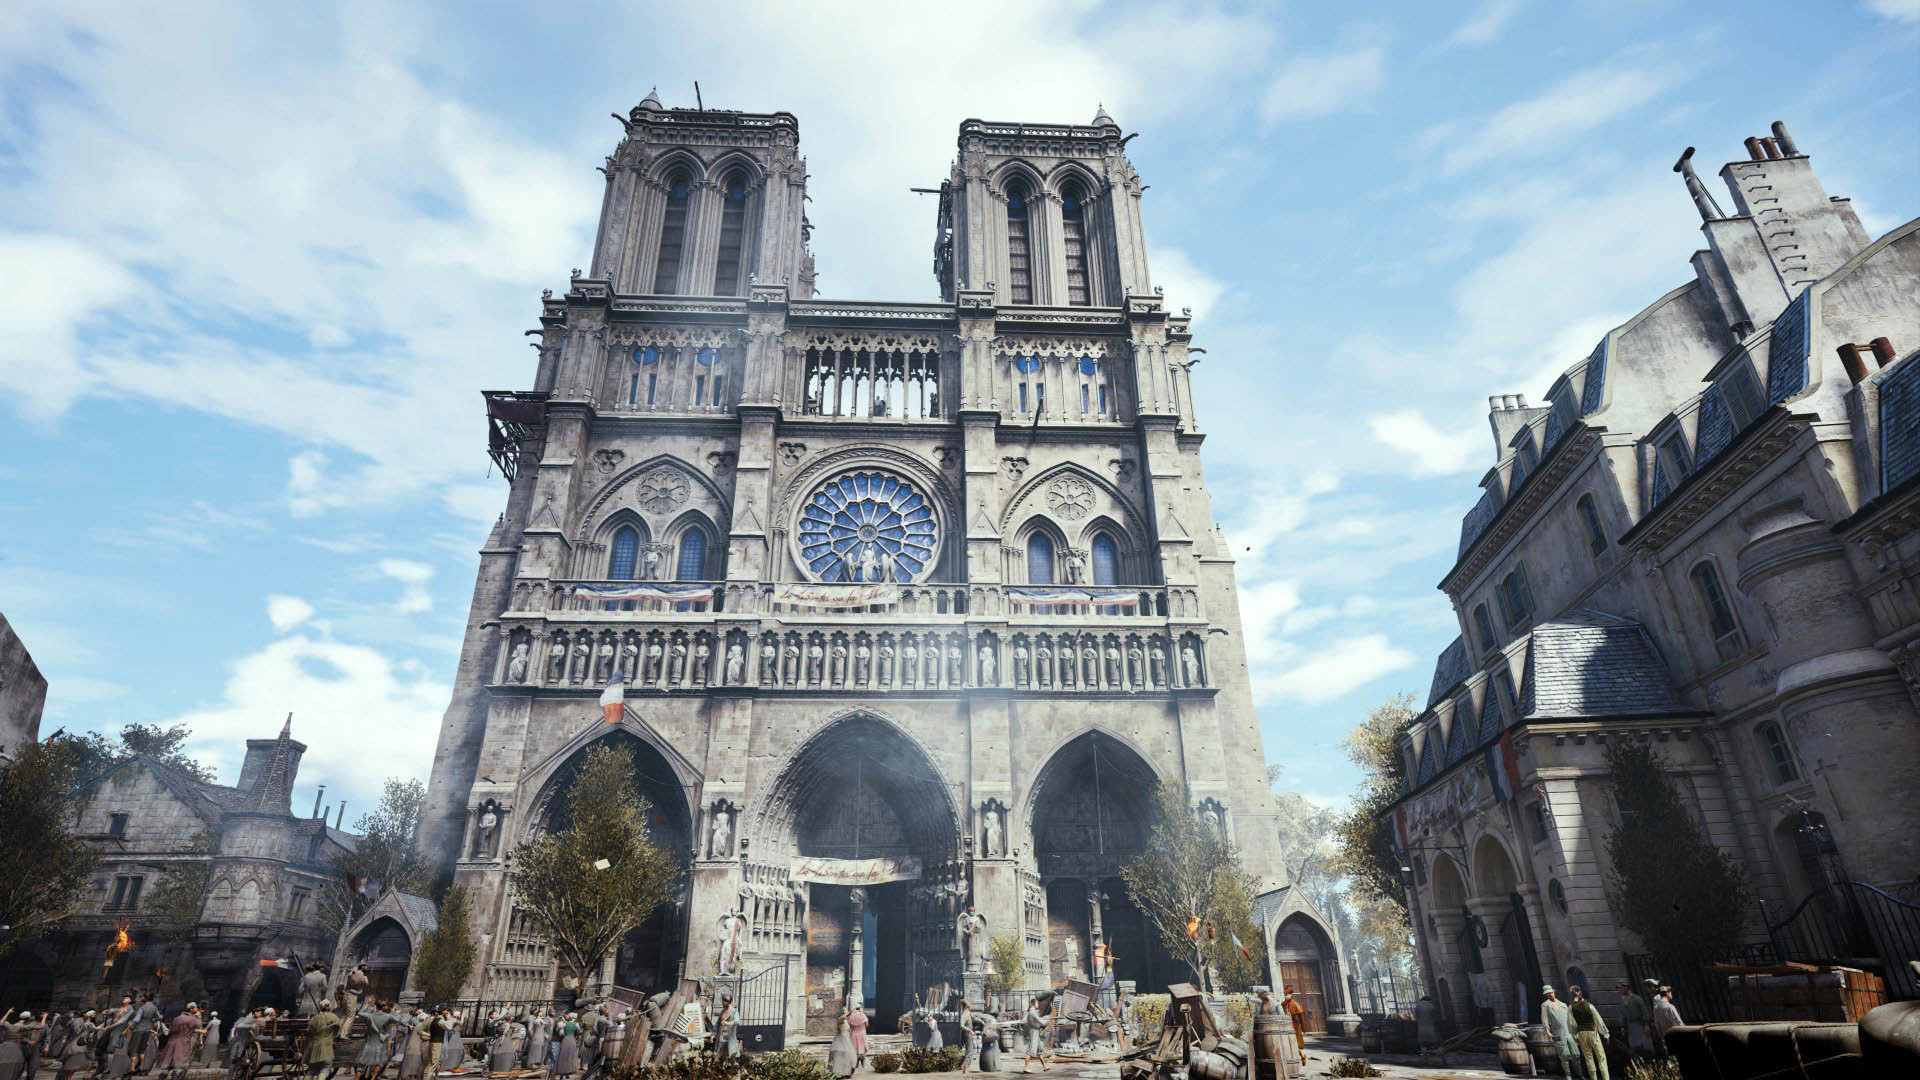 Pascal barriault 730764 downlox notre dame cathedral wallpaper 1920x1080